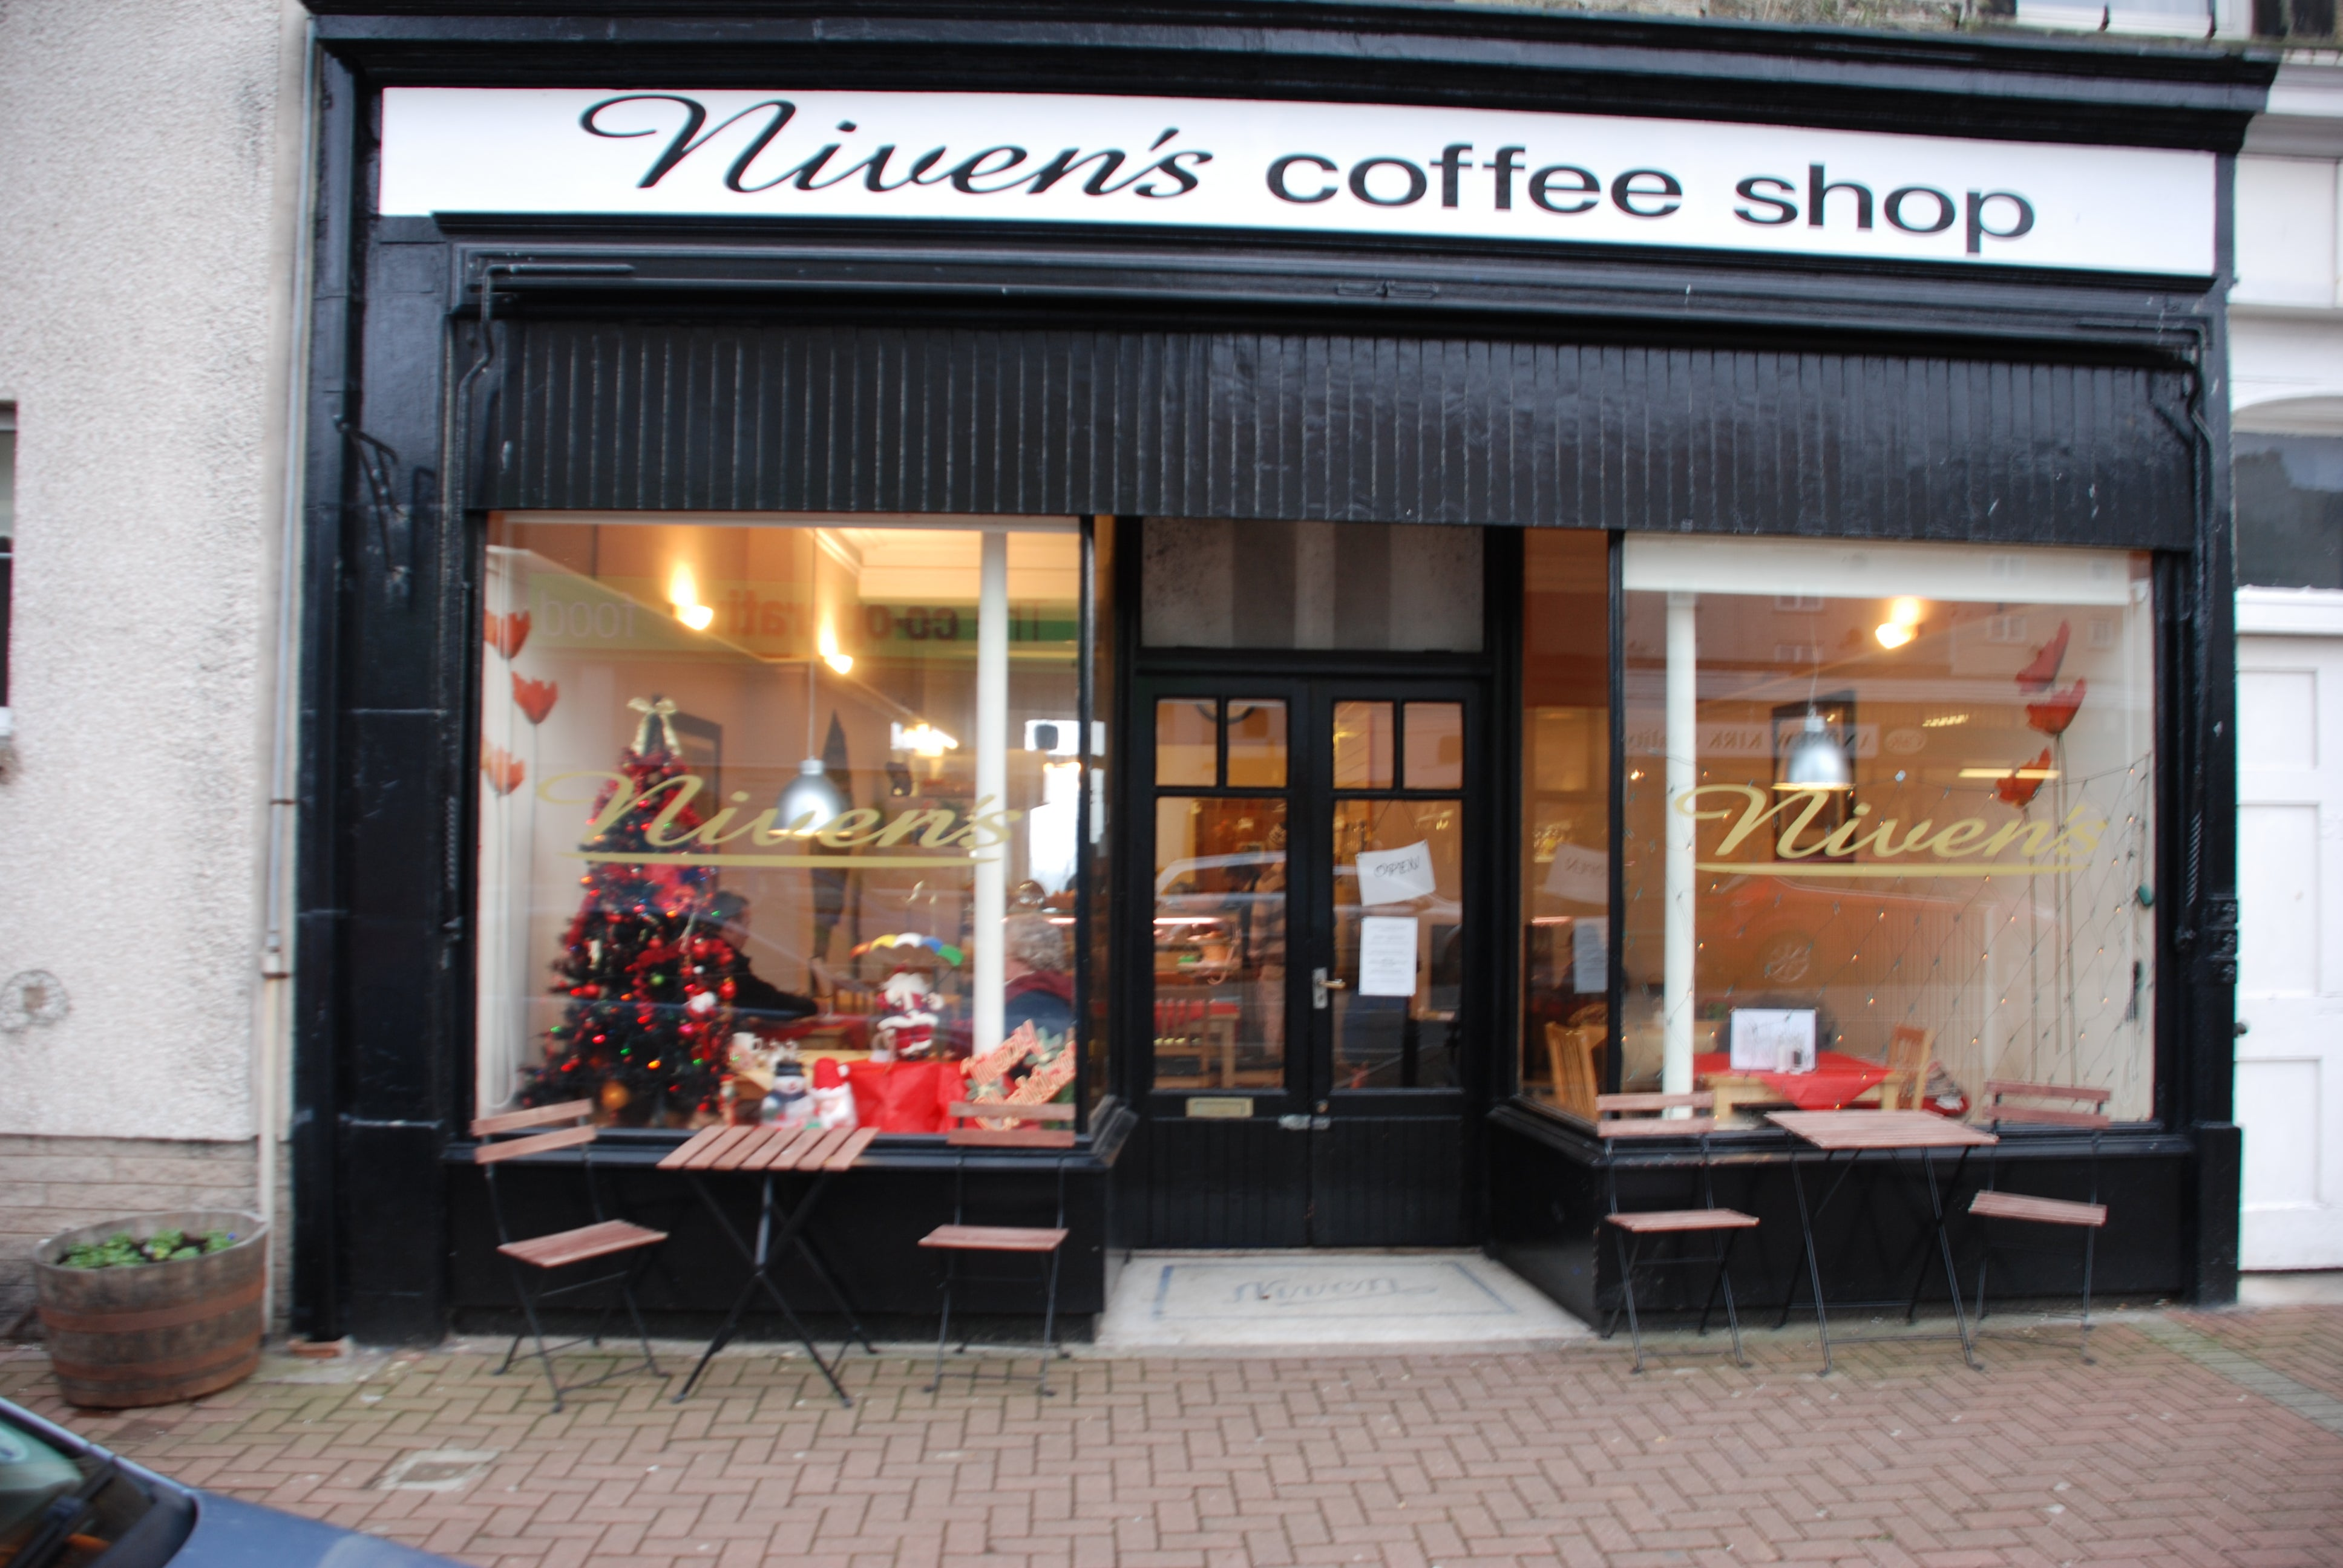 Niven's Coffee Shop